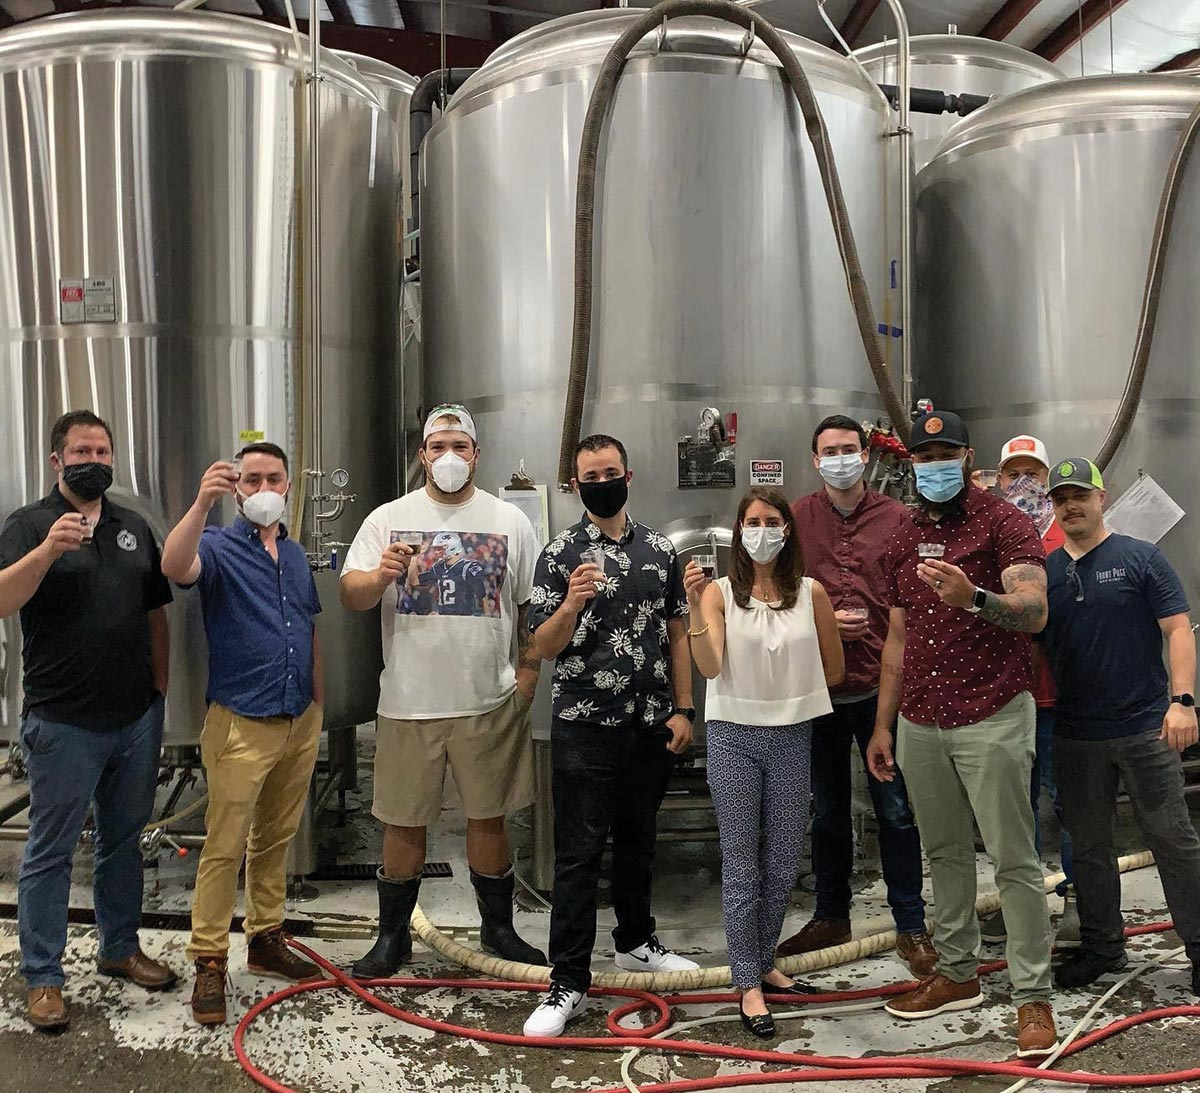 Newport Craft Announces New Team and Expansion